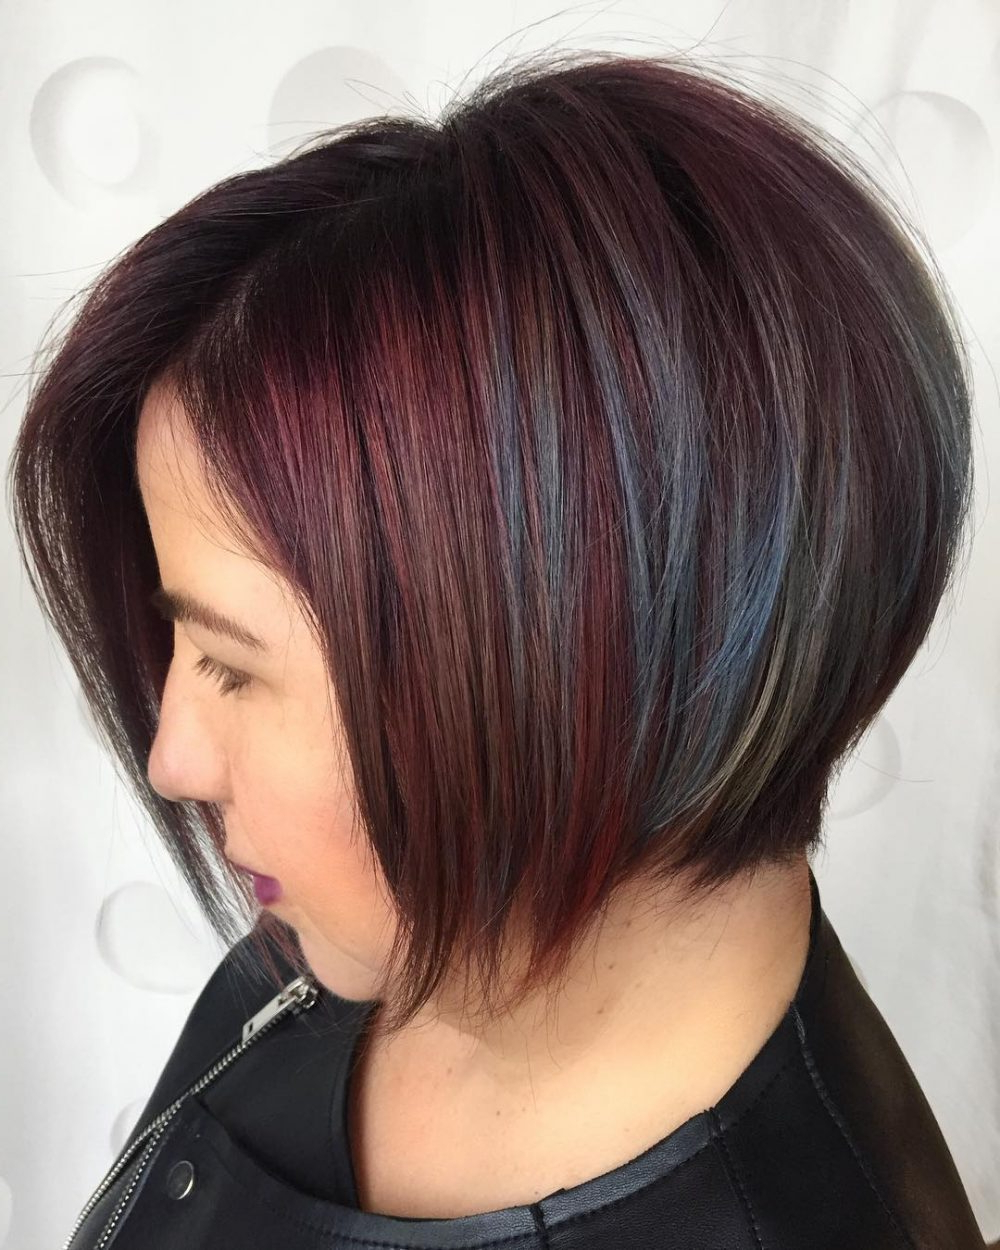 34 Greatest Short Haircuts And Hairstyles For Thick Hair For 2018 For Short Hairsyles For Thick Wavy Hair (View 3 of 25)